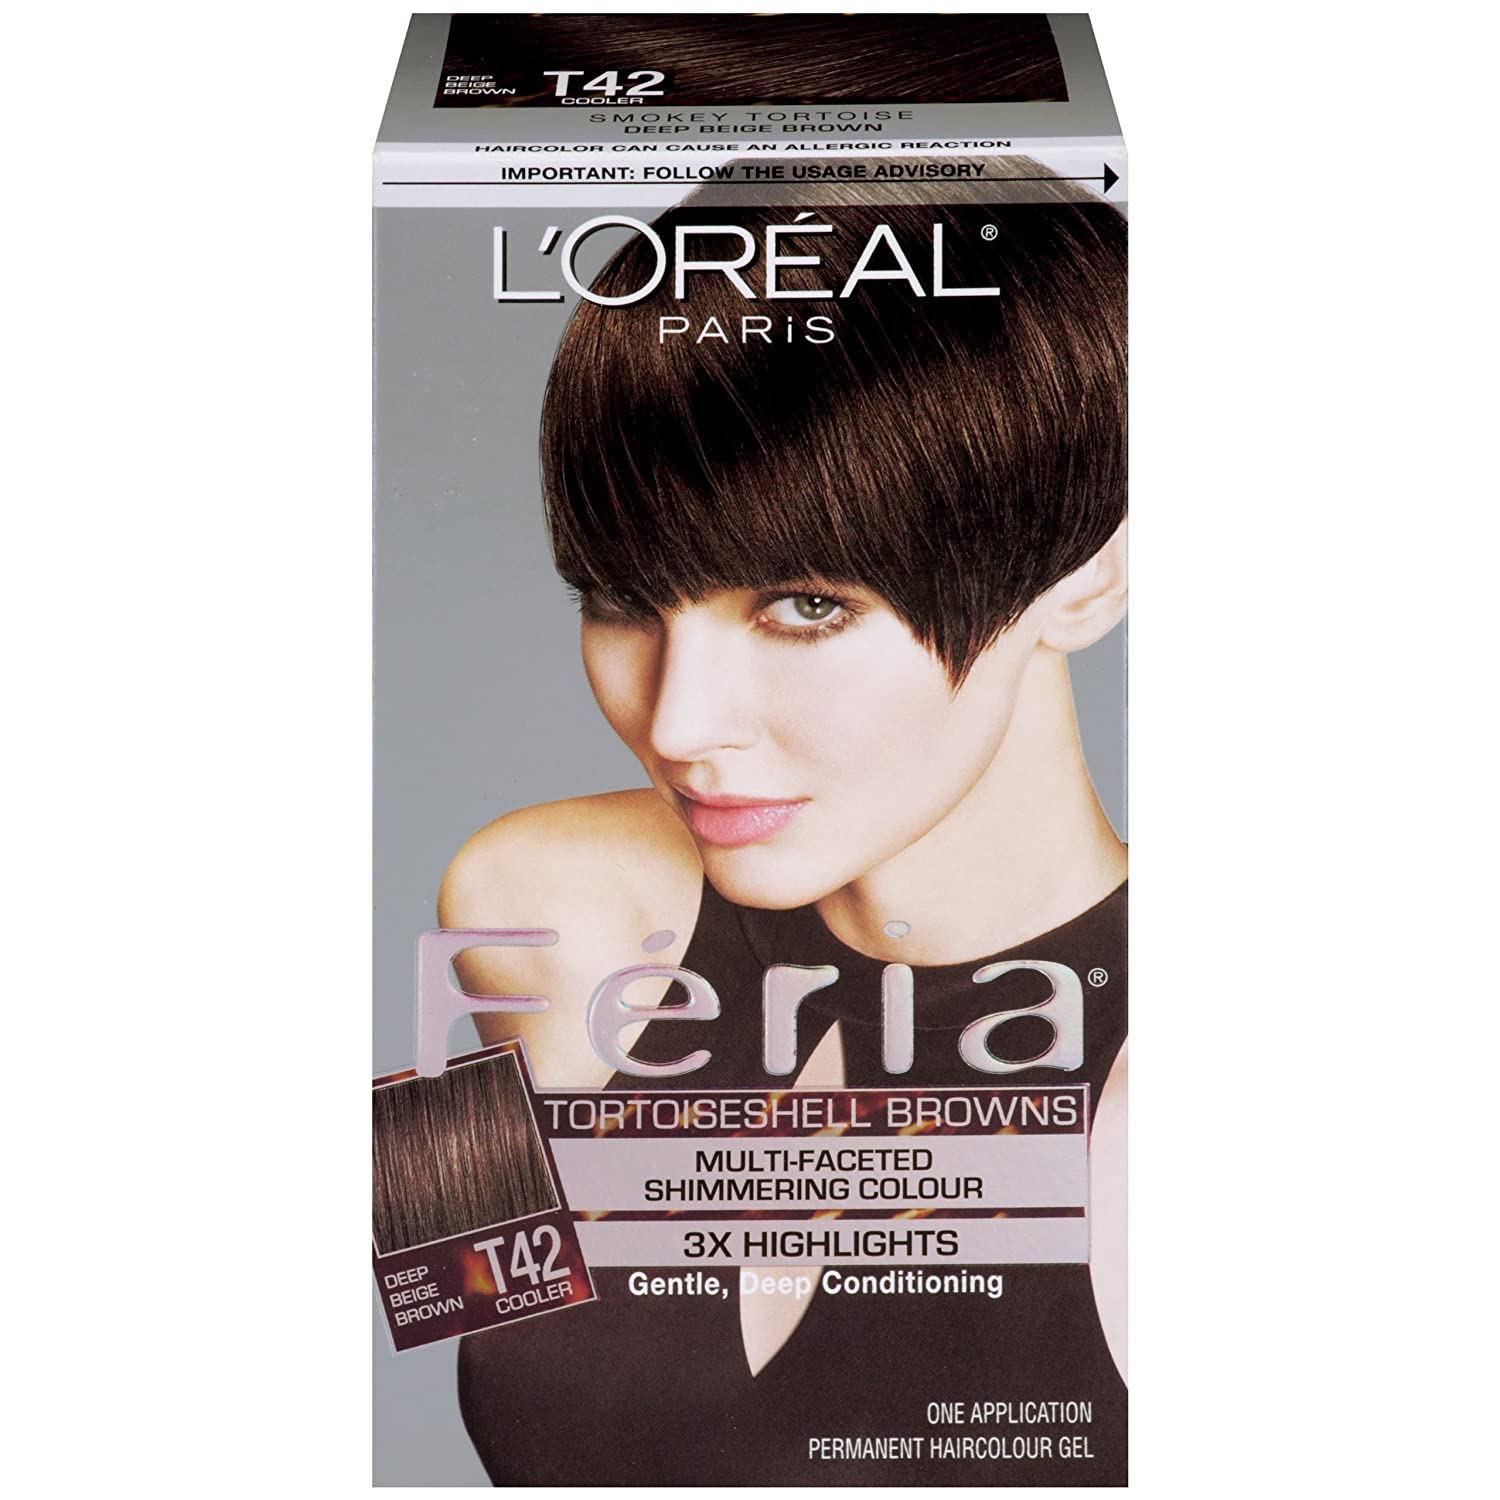 Amazon Loreal Paris Feria Hair Color T42 Deep Beige Brown